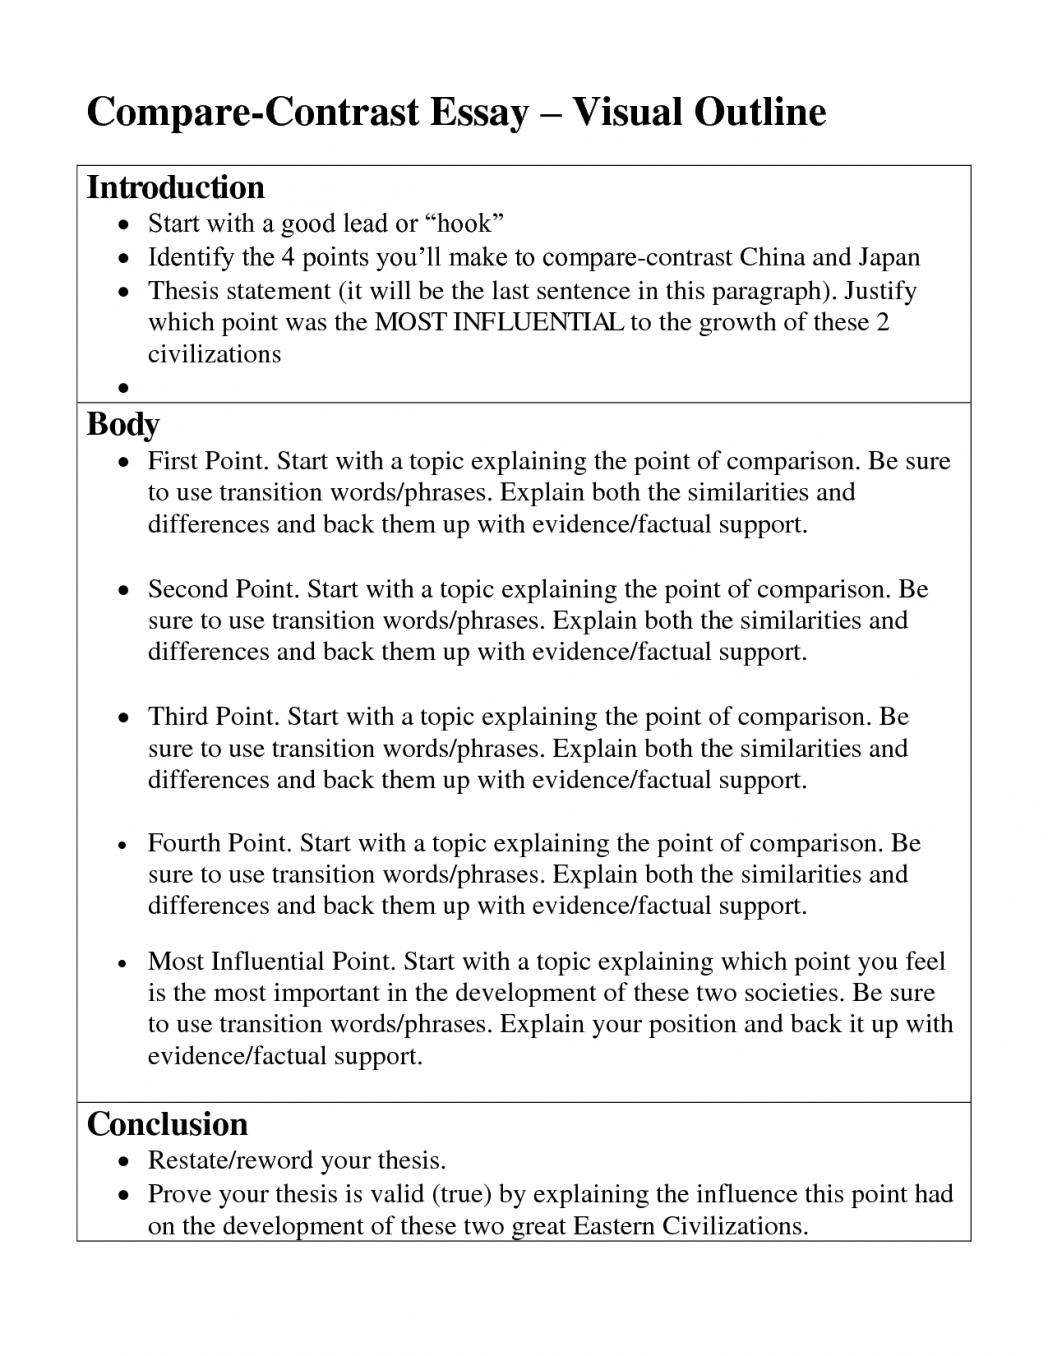 009 Compare And Contrast Essay Topics For High School Students English College Pdf Research Paper 1048x1356 Fantastic Ielts Full